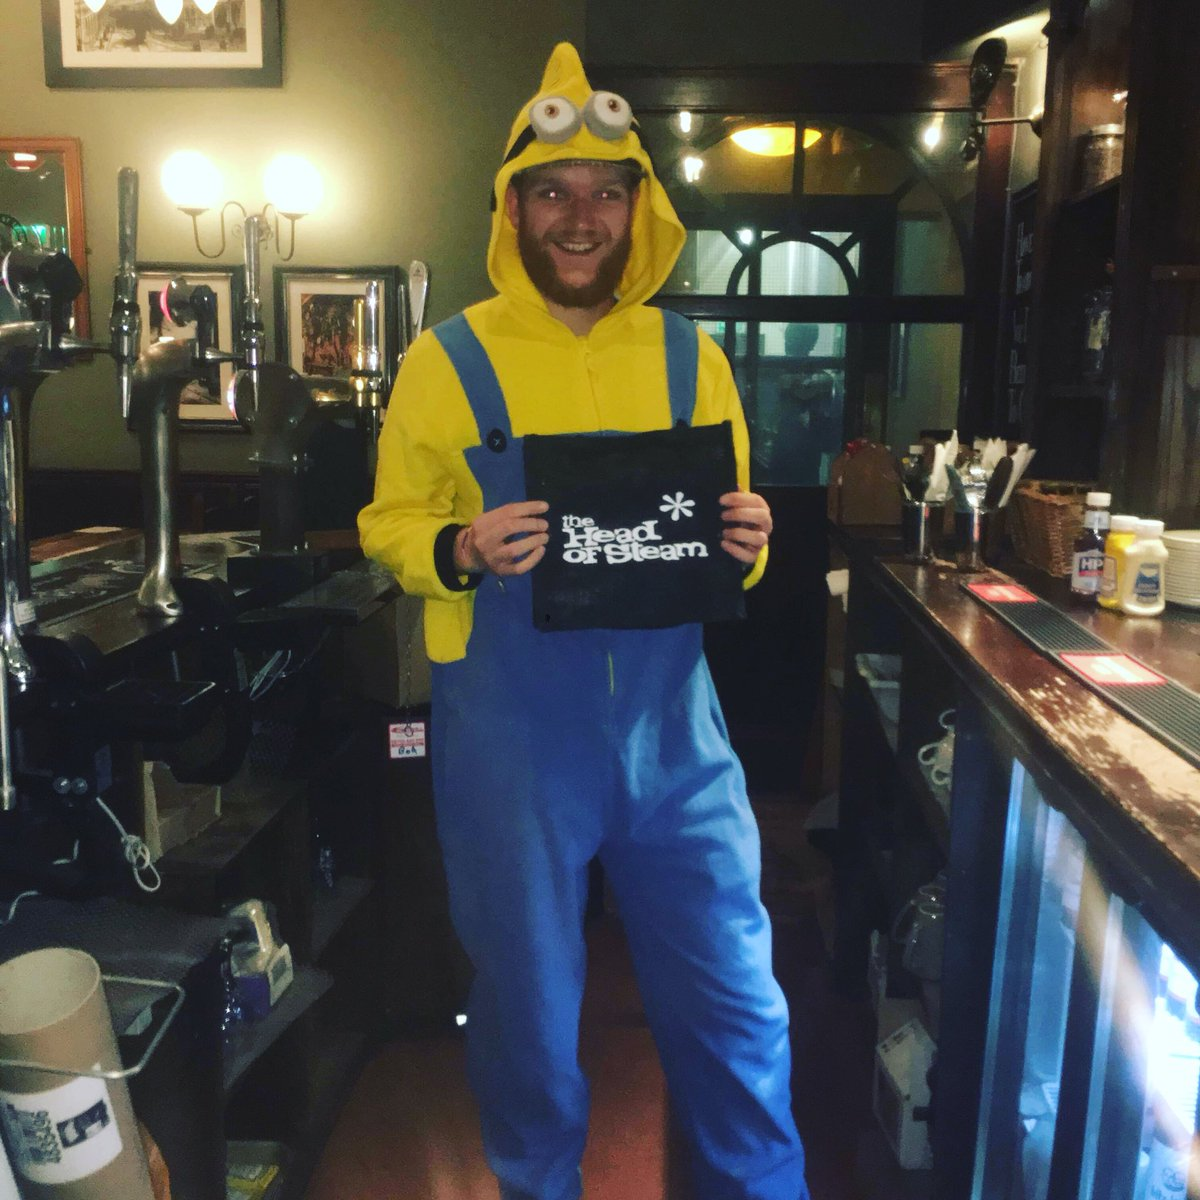 Its important to have fun where you work, #mademyday #headofsteamhuddersfield #cameronsbrewery #headofsteam #funatwork #craftbeer #hardatwork #hardwork #grafting